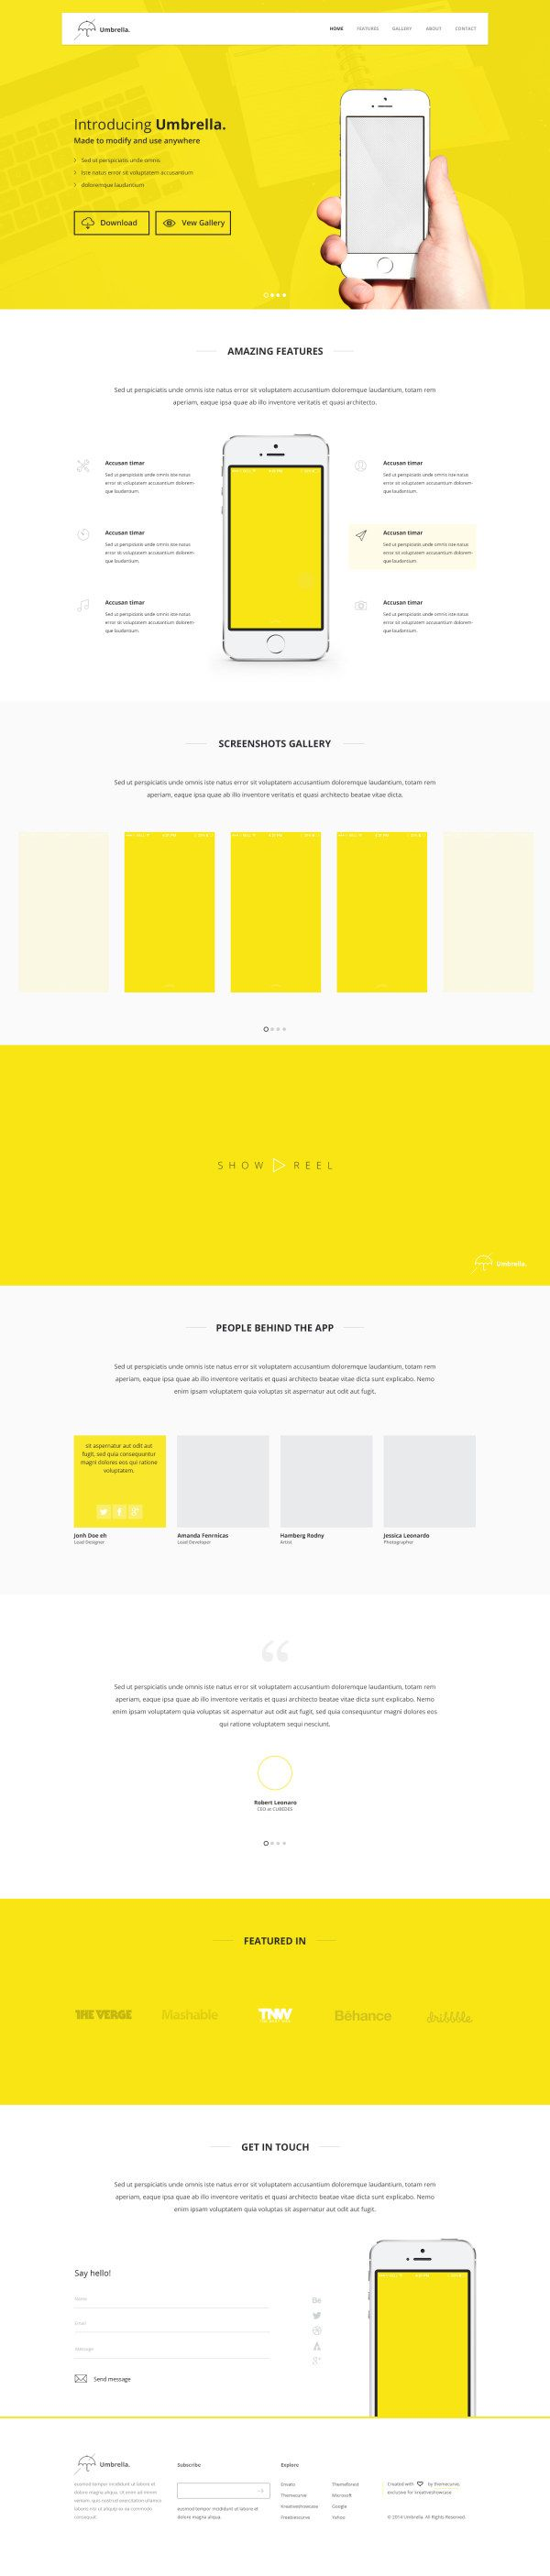 Yellow style website template creative design - Web Elements PSD File free download